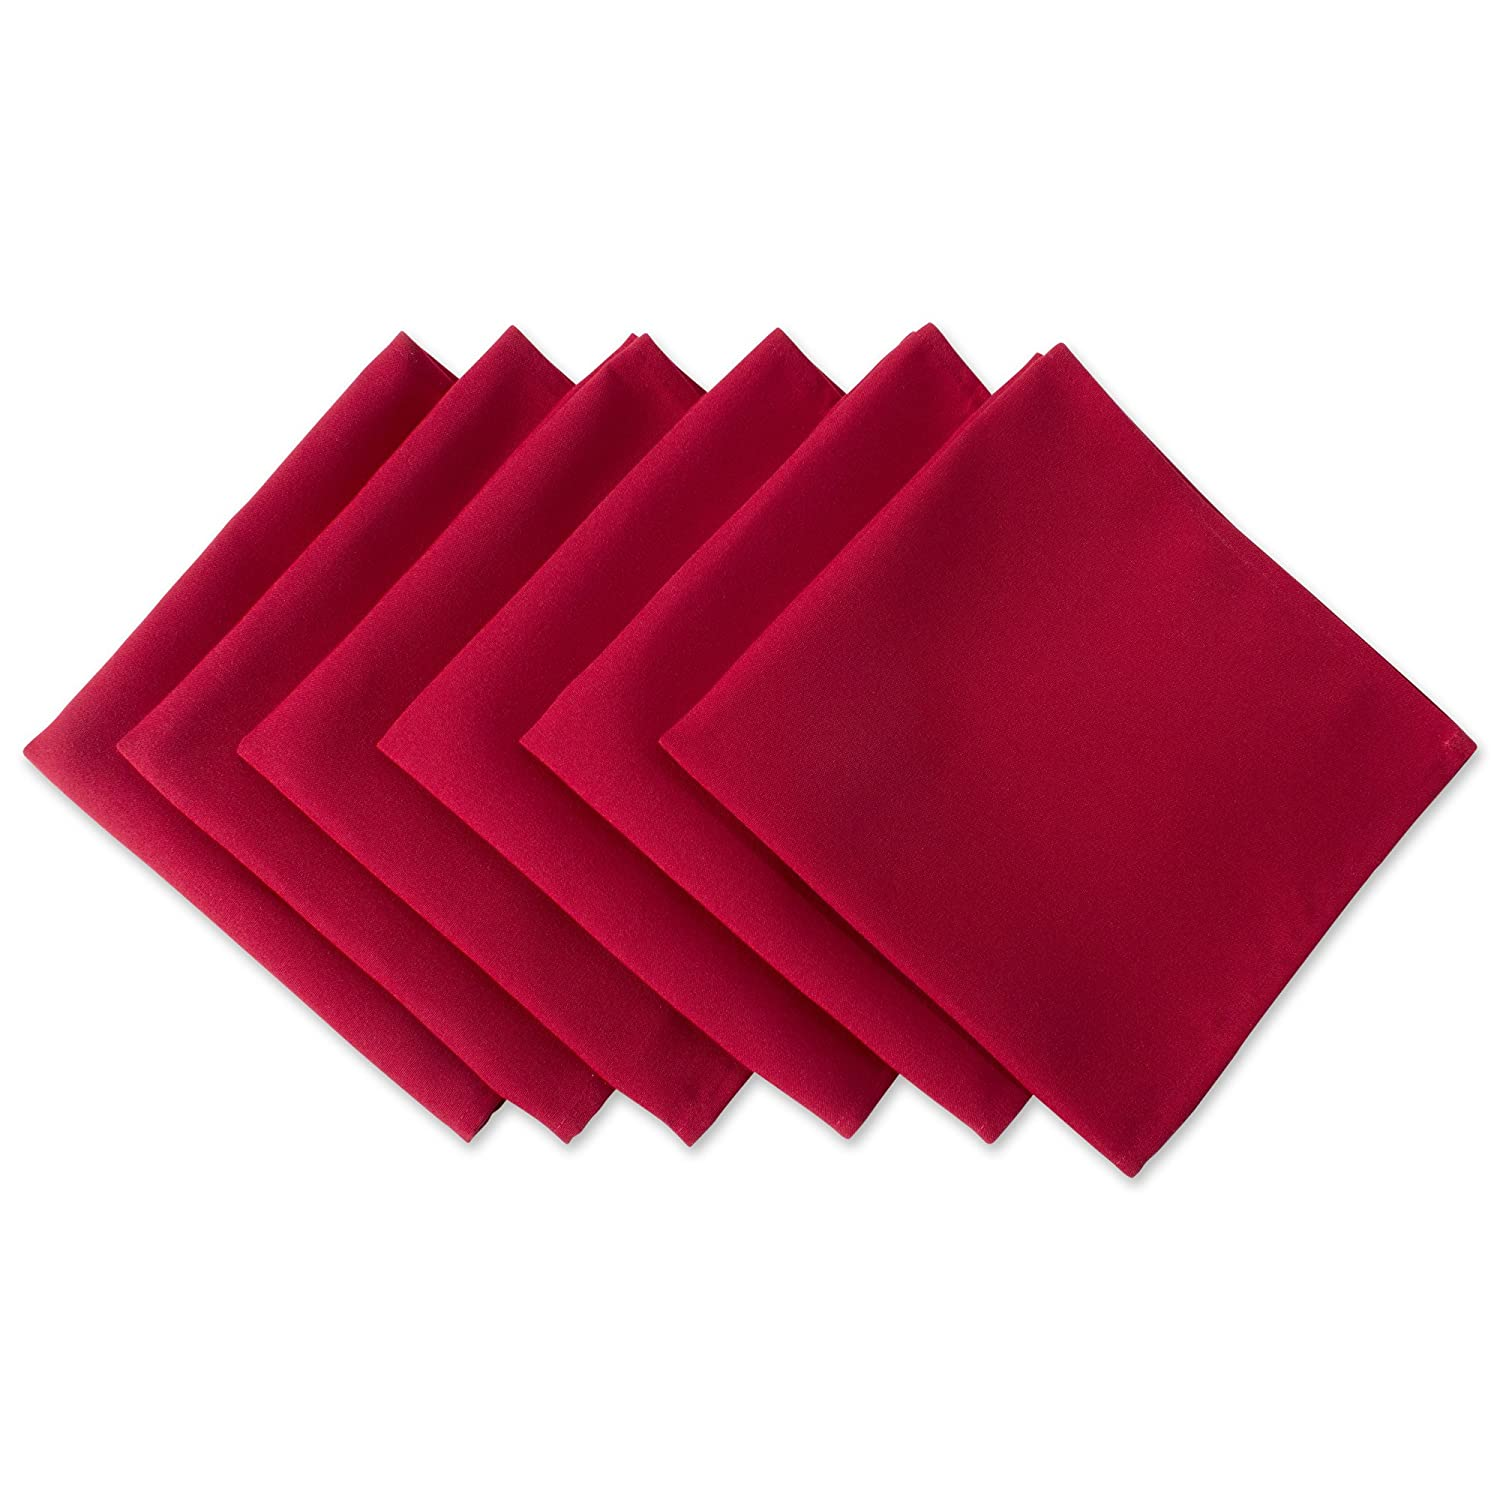 """DII Wrinkle Resistant 20x20"""" Polyester Napkin, Pack of 6, Red - Perfect for Brunch, Catering Events, Thanksgiving, Dinner Parties, Christmas and Everyday Use"""